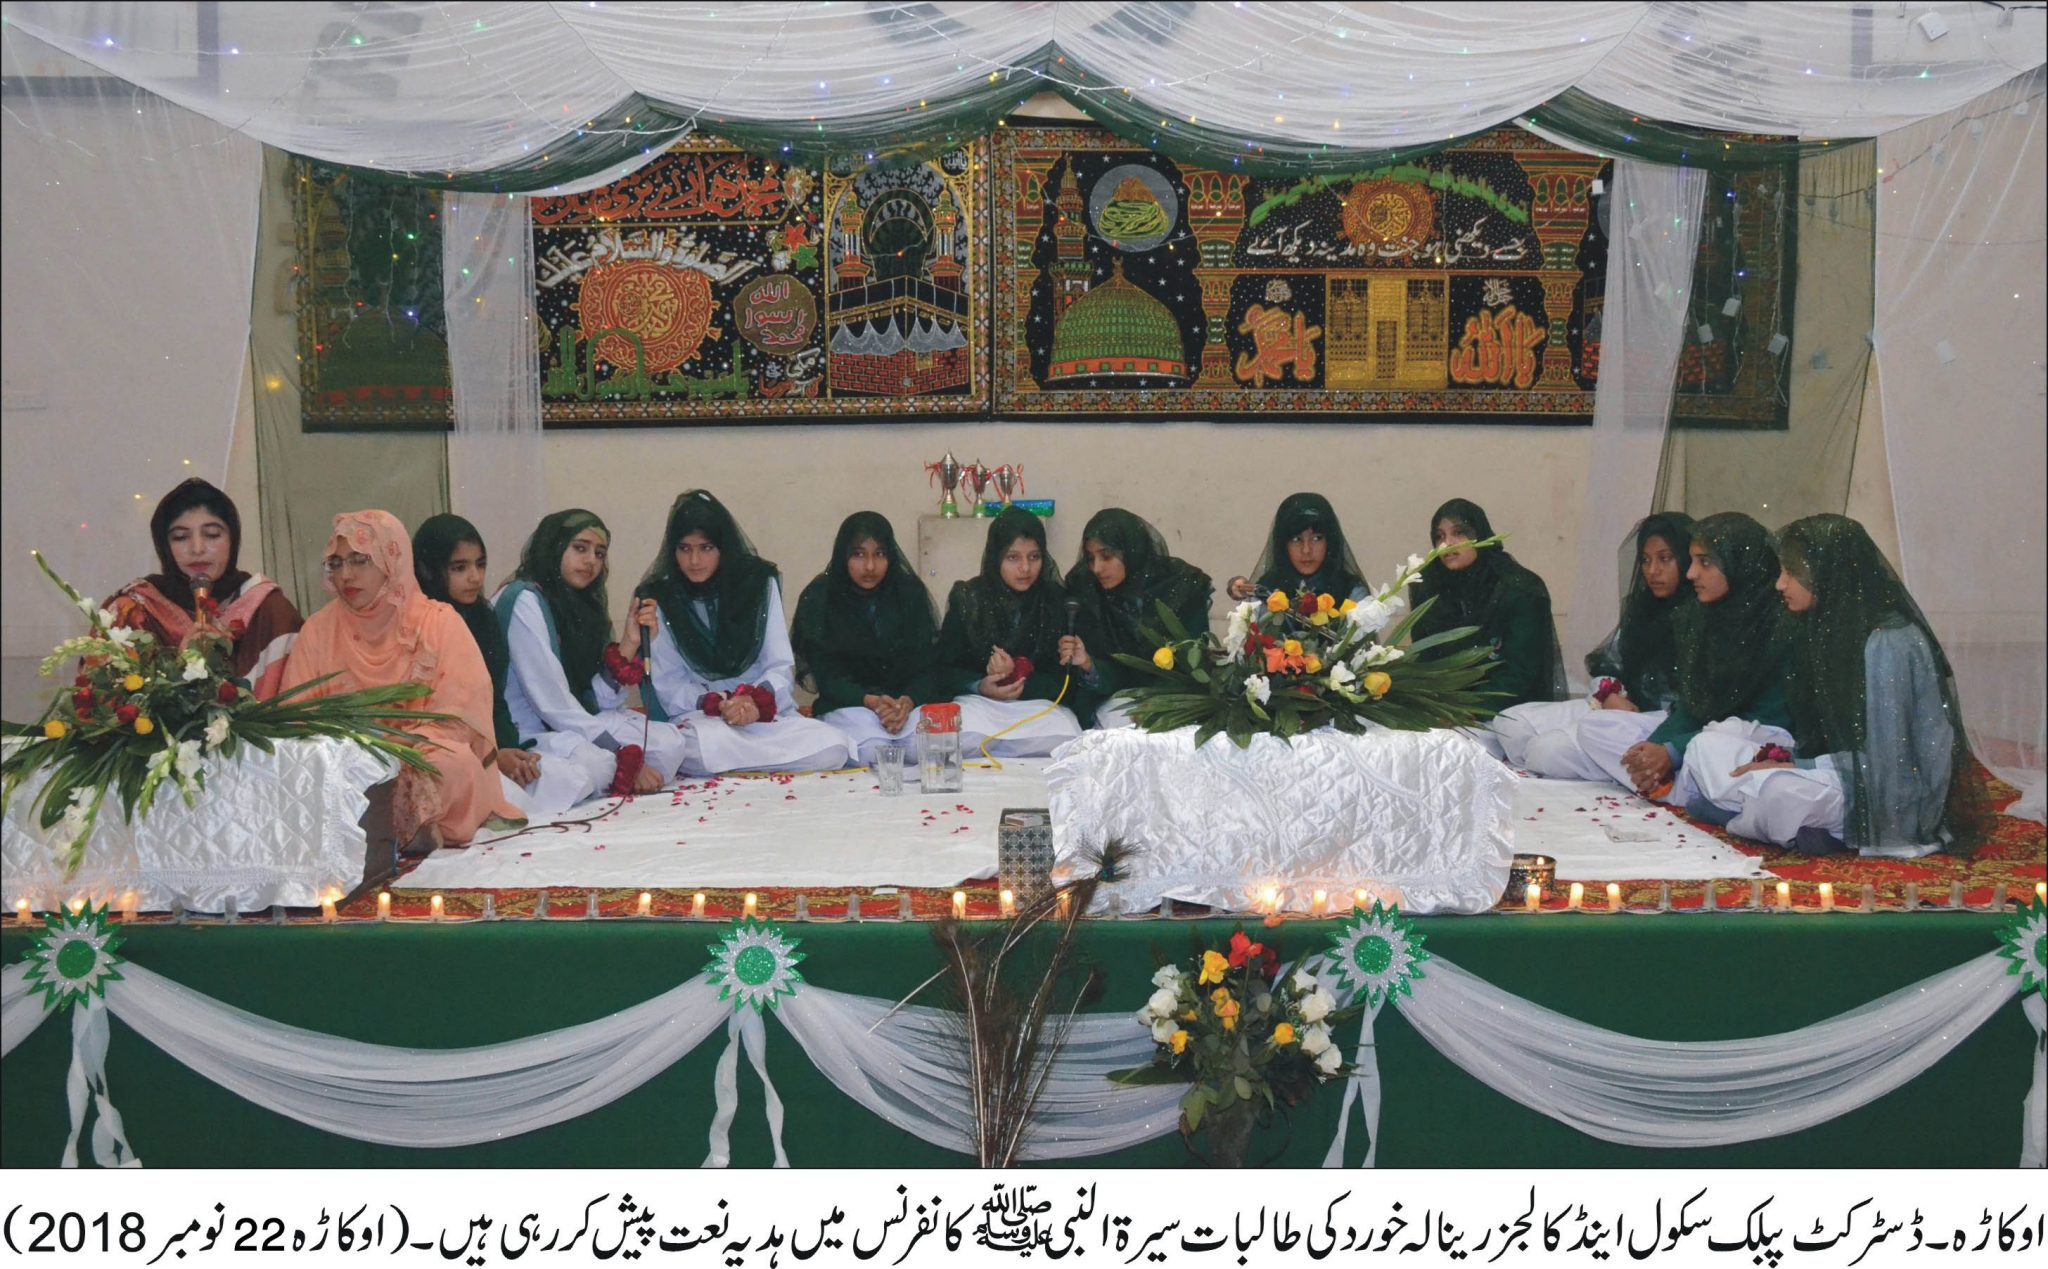 DC okara maryam khan on eil milad ul nabi program